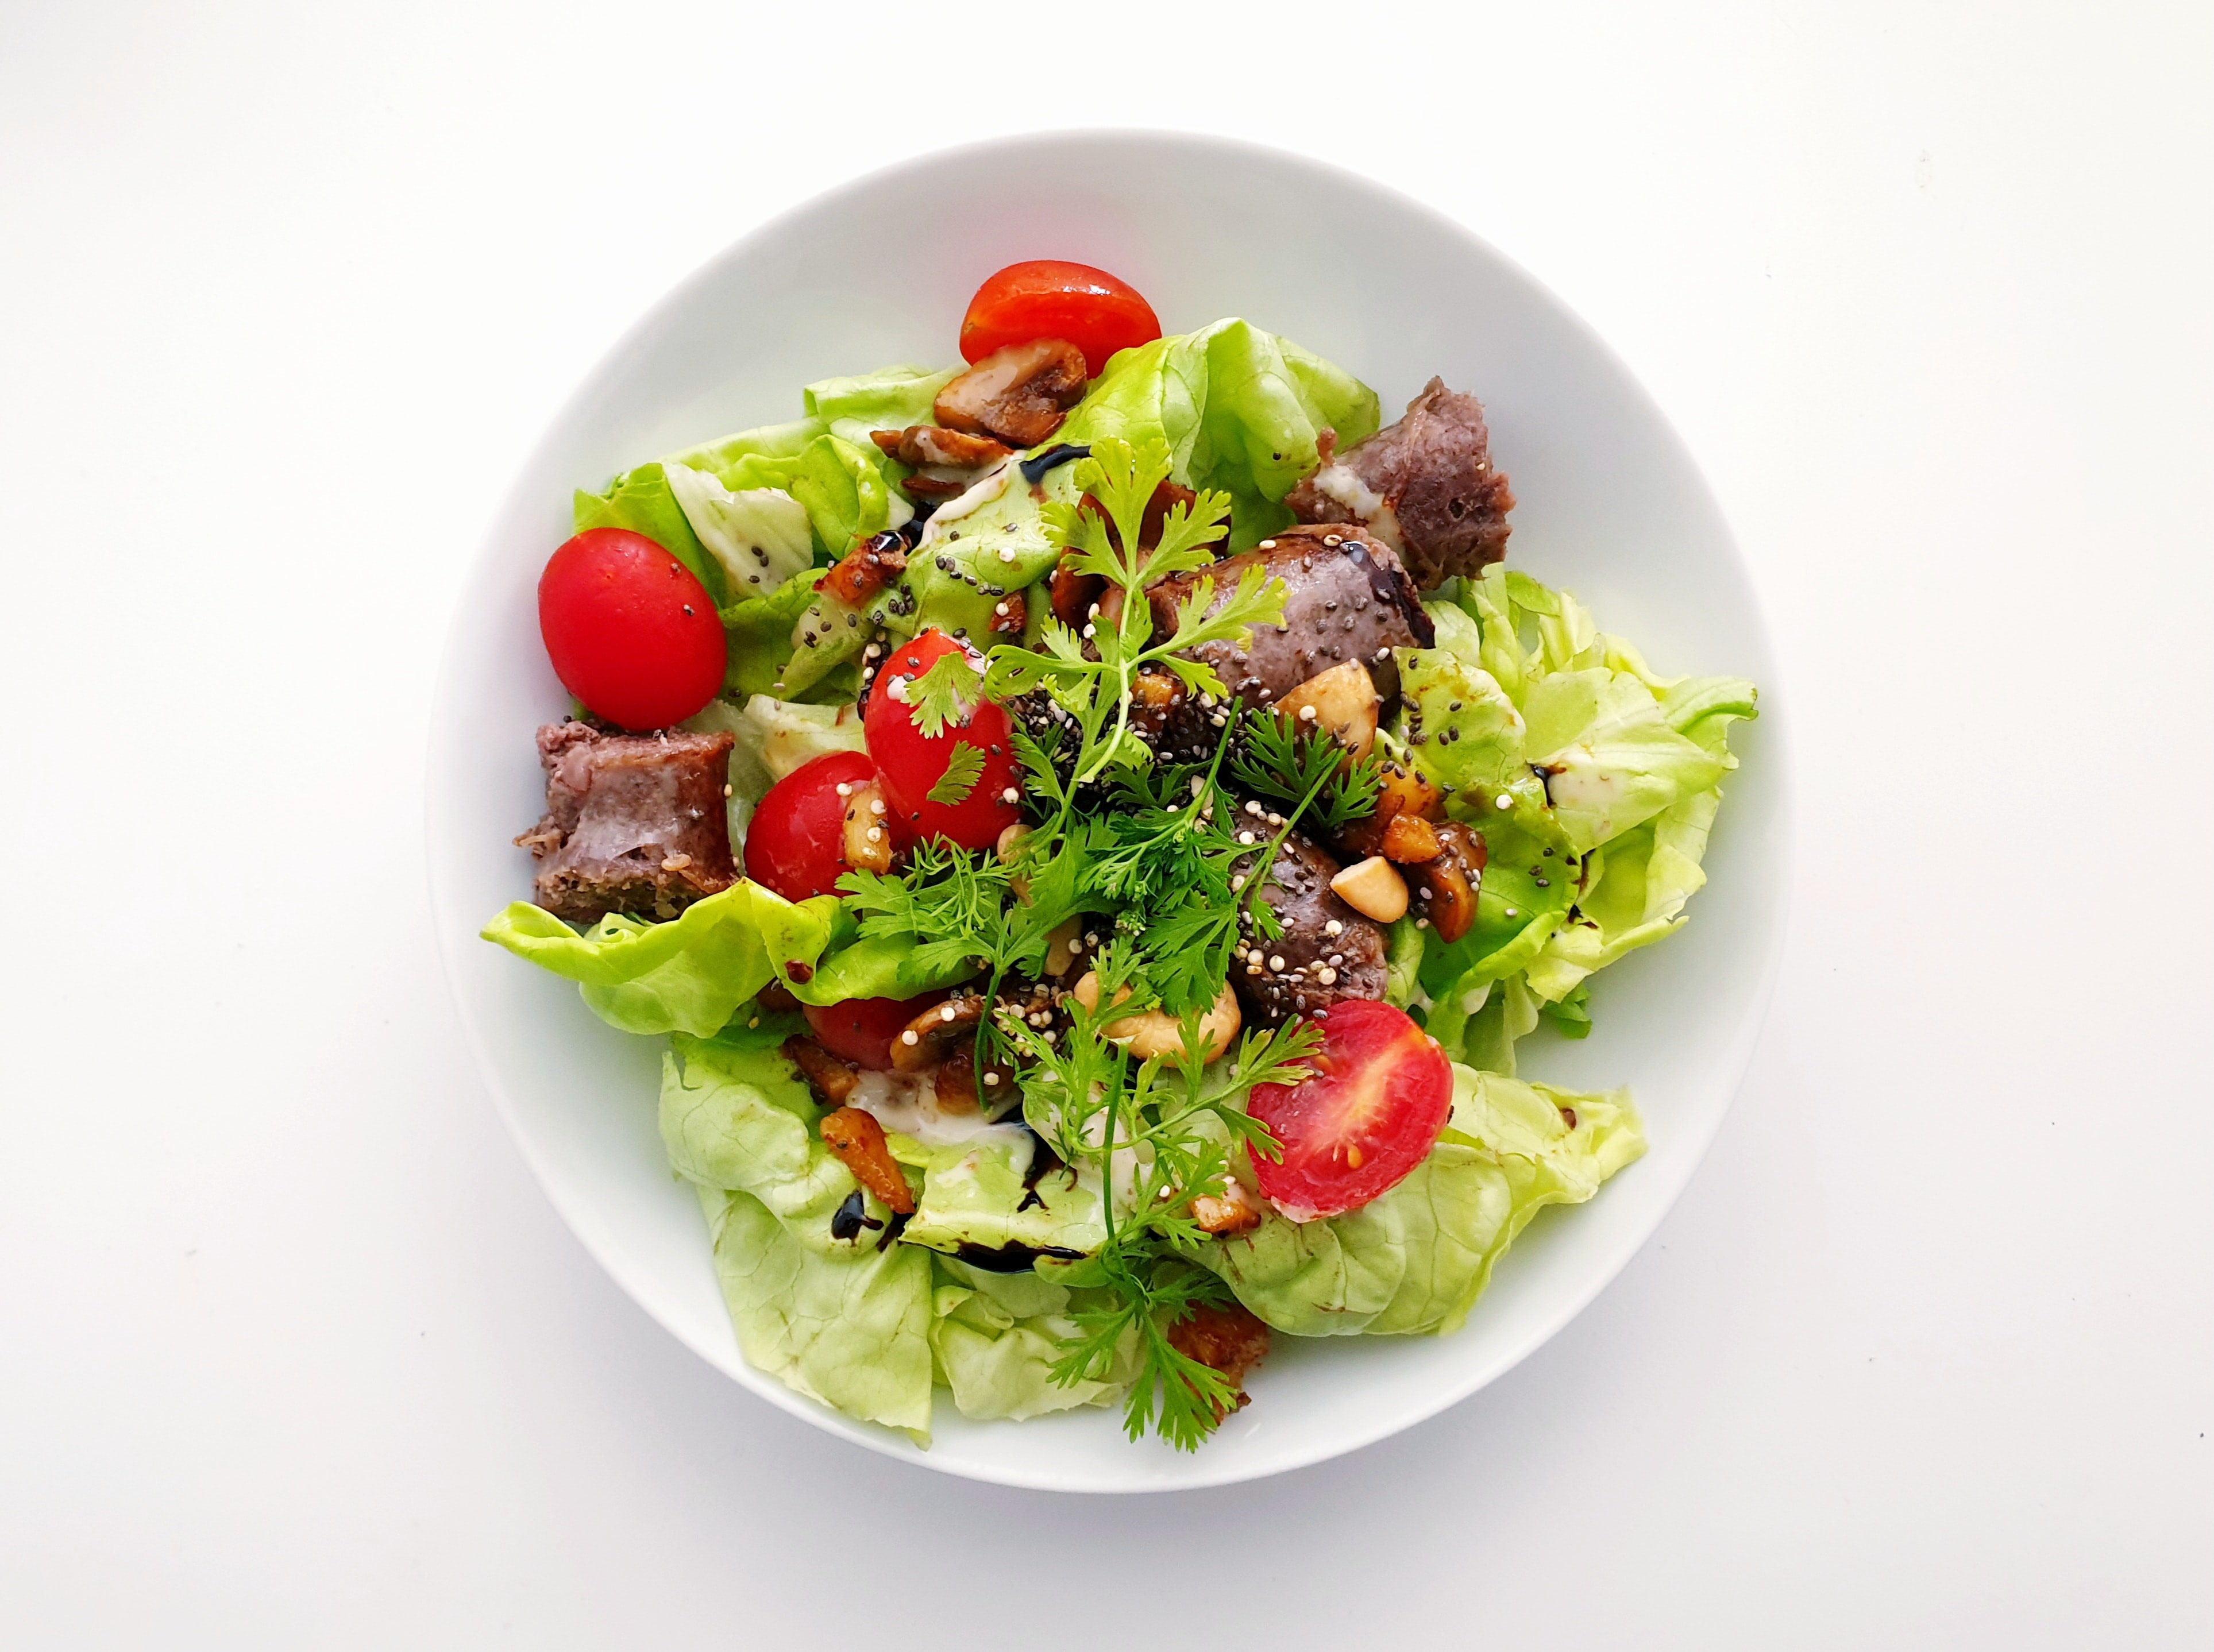 Lettuce with tomatoes, fresh herbs, and mushrooms.